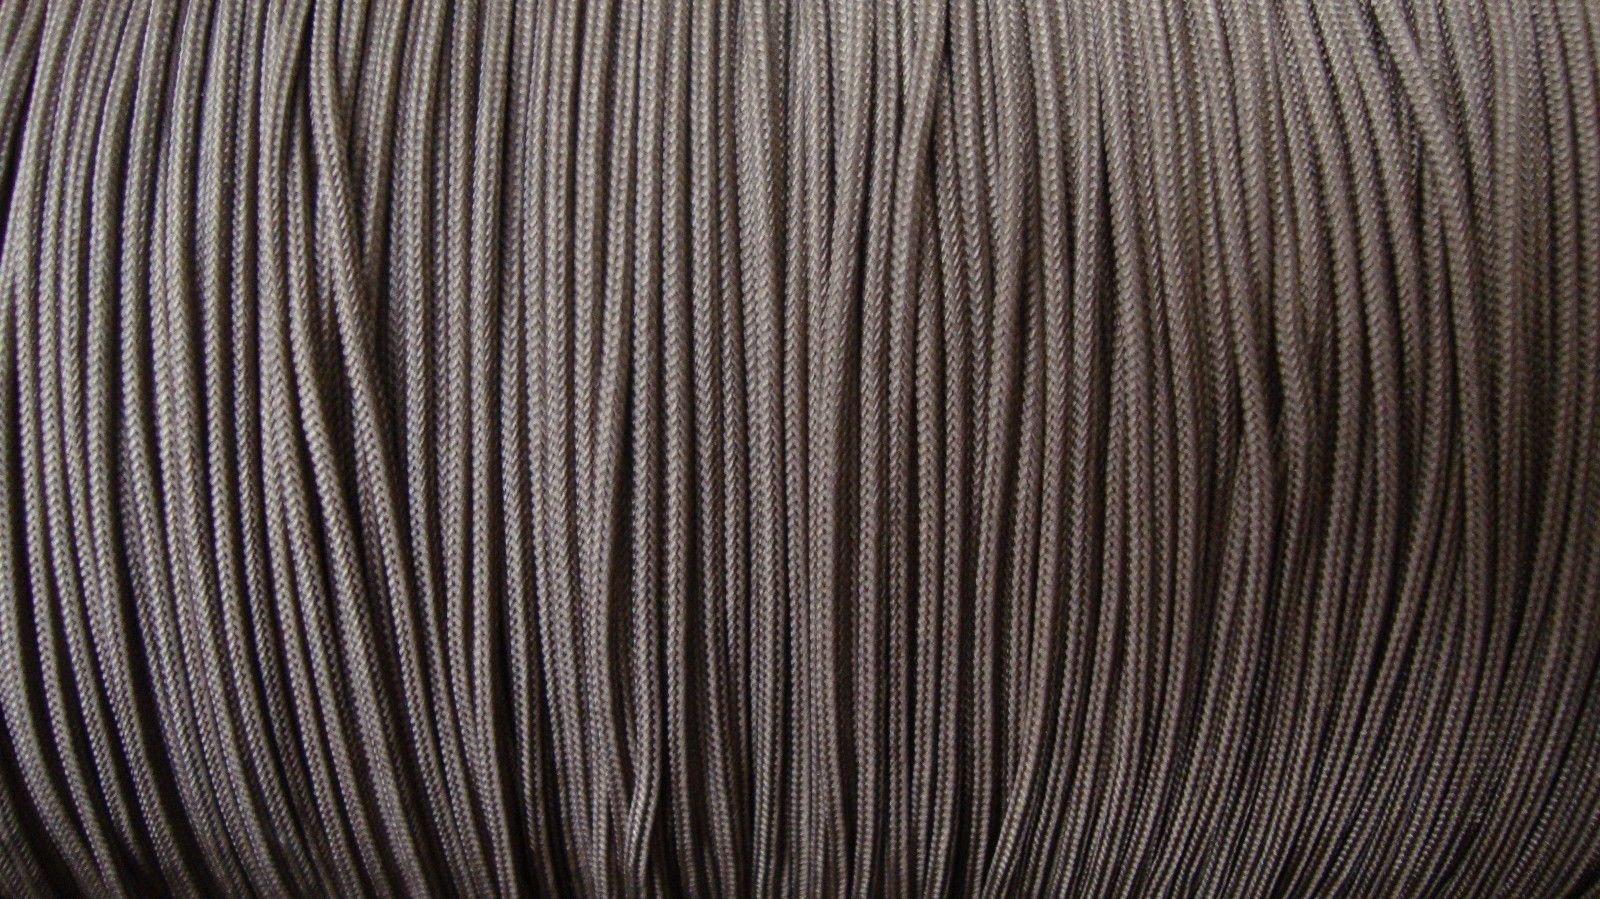 20 FEET:1.8mm CHOCOLATE LIFT CORD for Blinds, Roman Shades and More